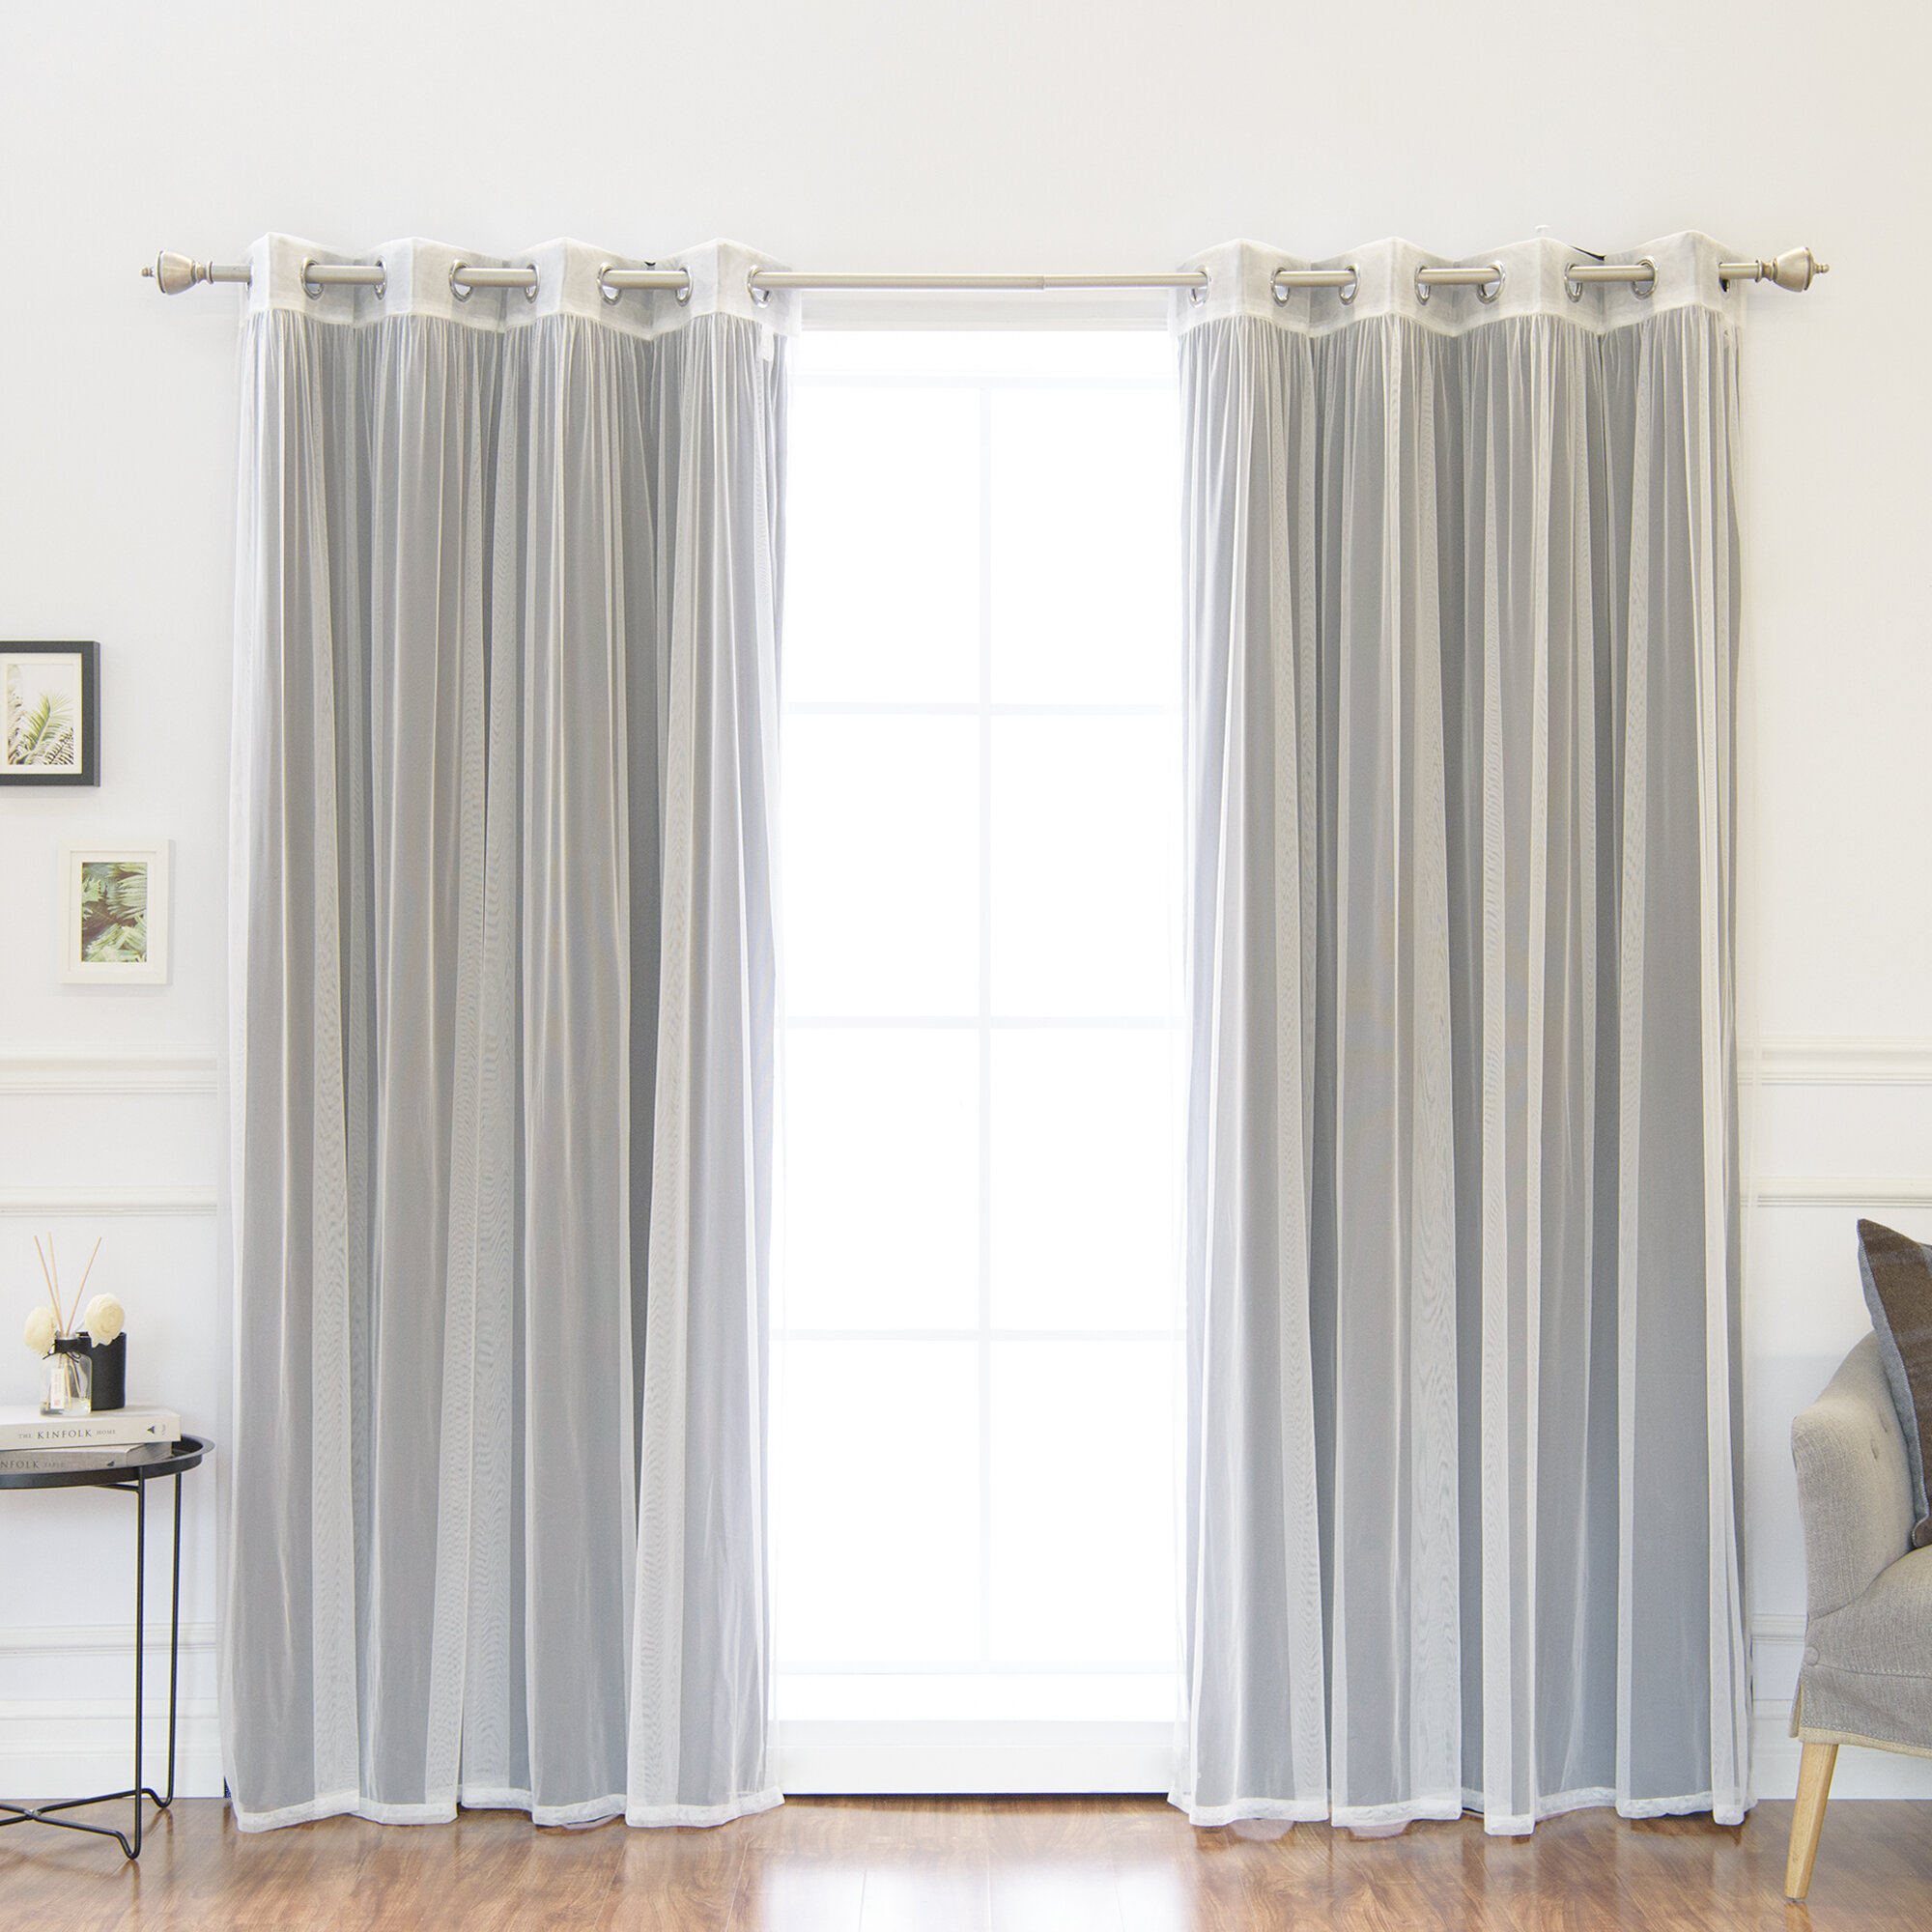 Evangelista Tulle Solid Blackout Thermal Grommet Panel Pair With Regard To Tulle Sheer With Attached Valance And Blackout 4 Piece Curtain Panel Pairs (View 10 of 30)